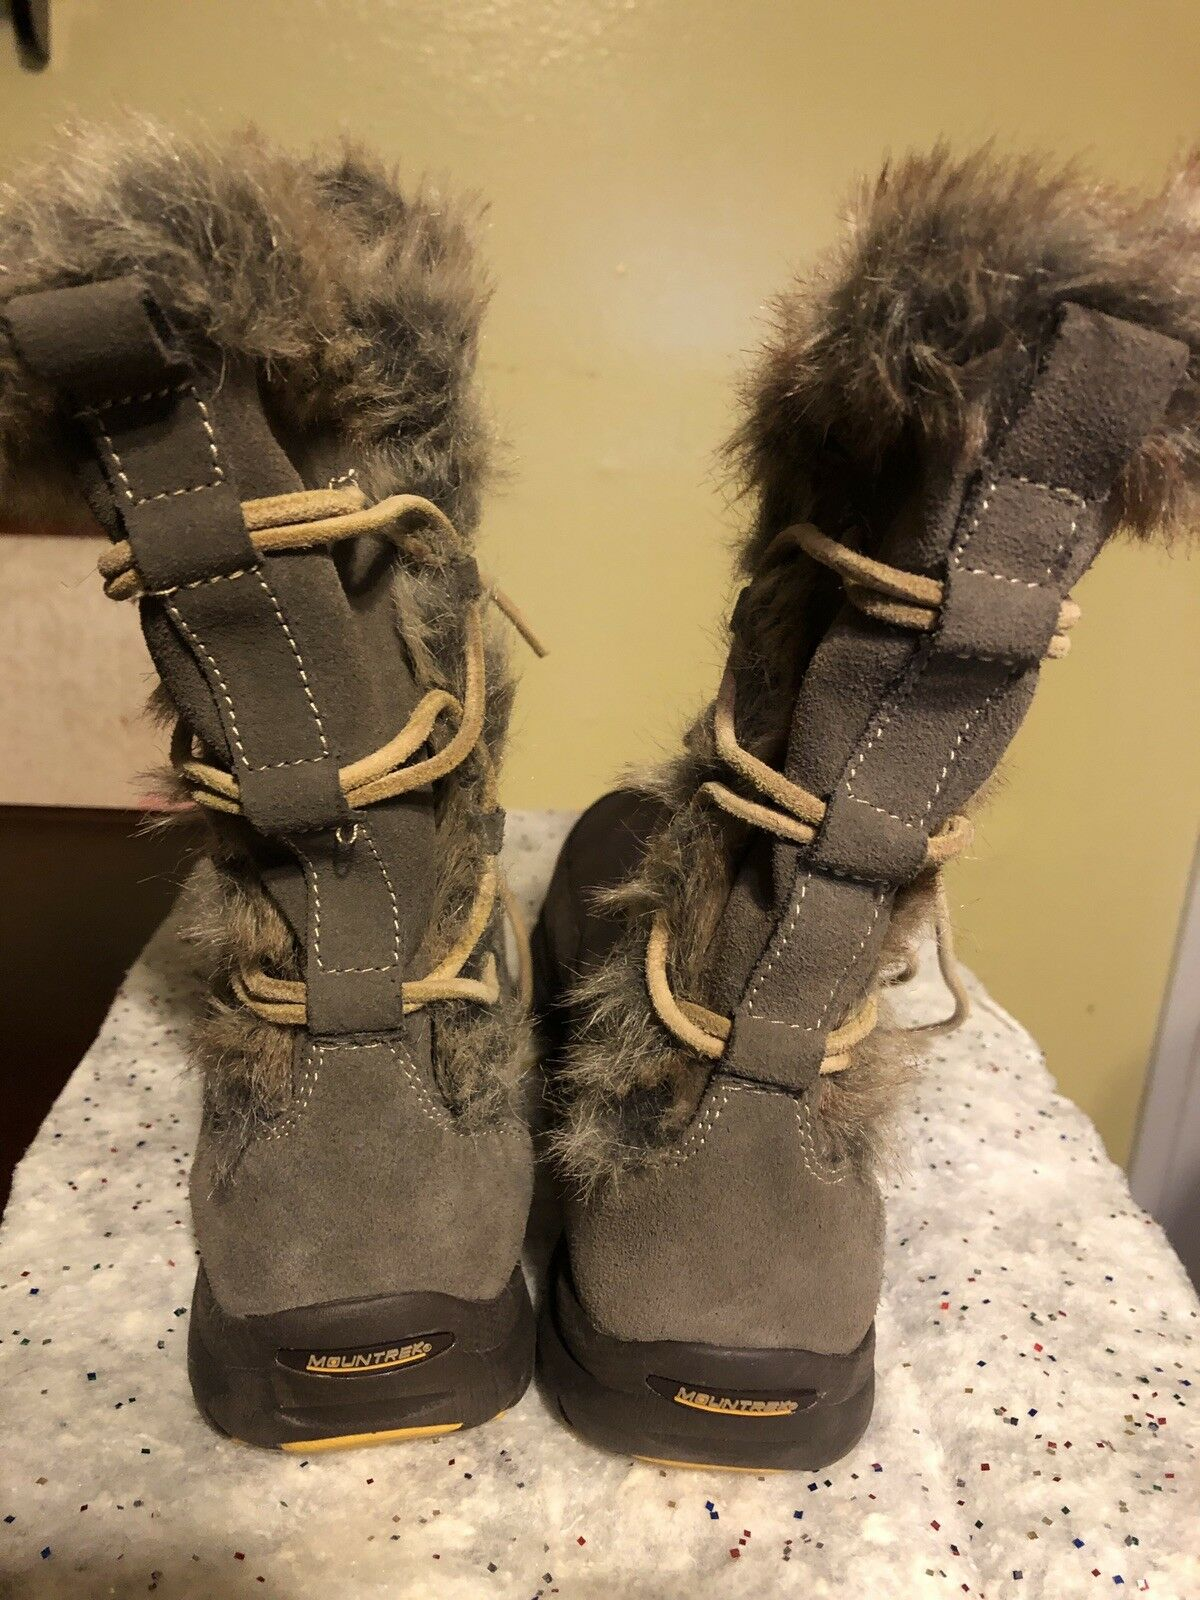 Mountrek-Ellie Lodge shoes-Boots shoes-Boots shoes-Boots Striking Women's Taupe Suze 7.5 New ab5cda